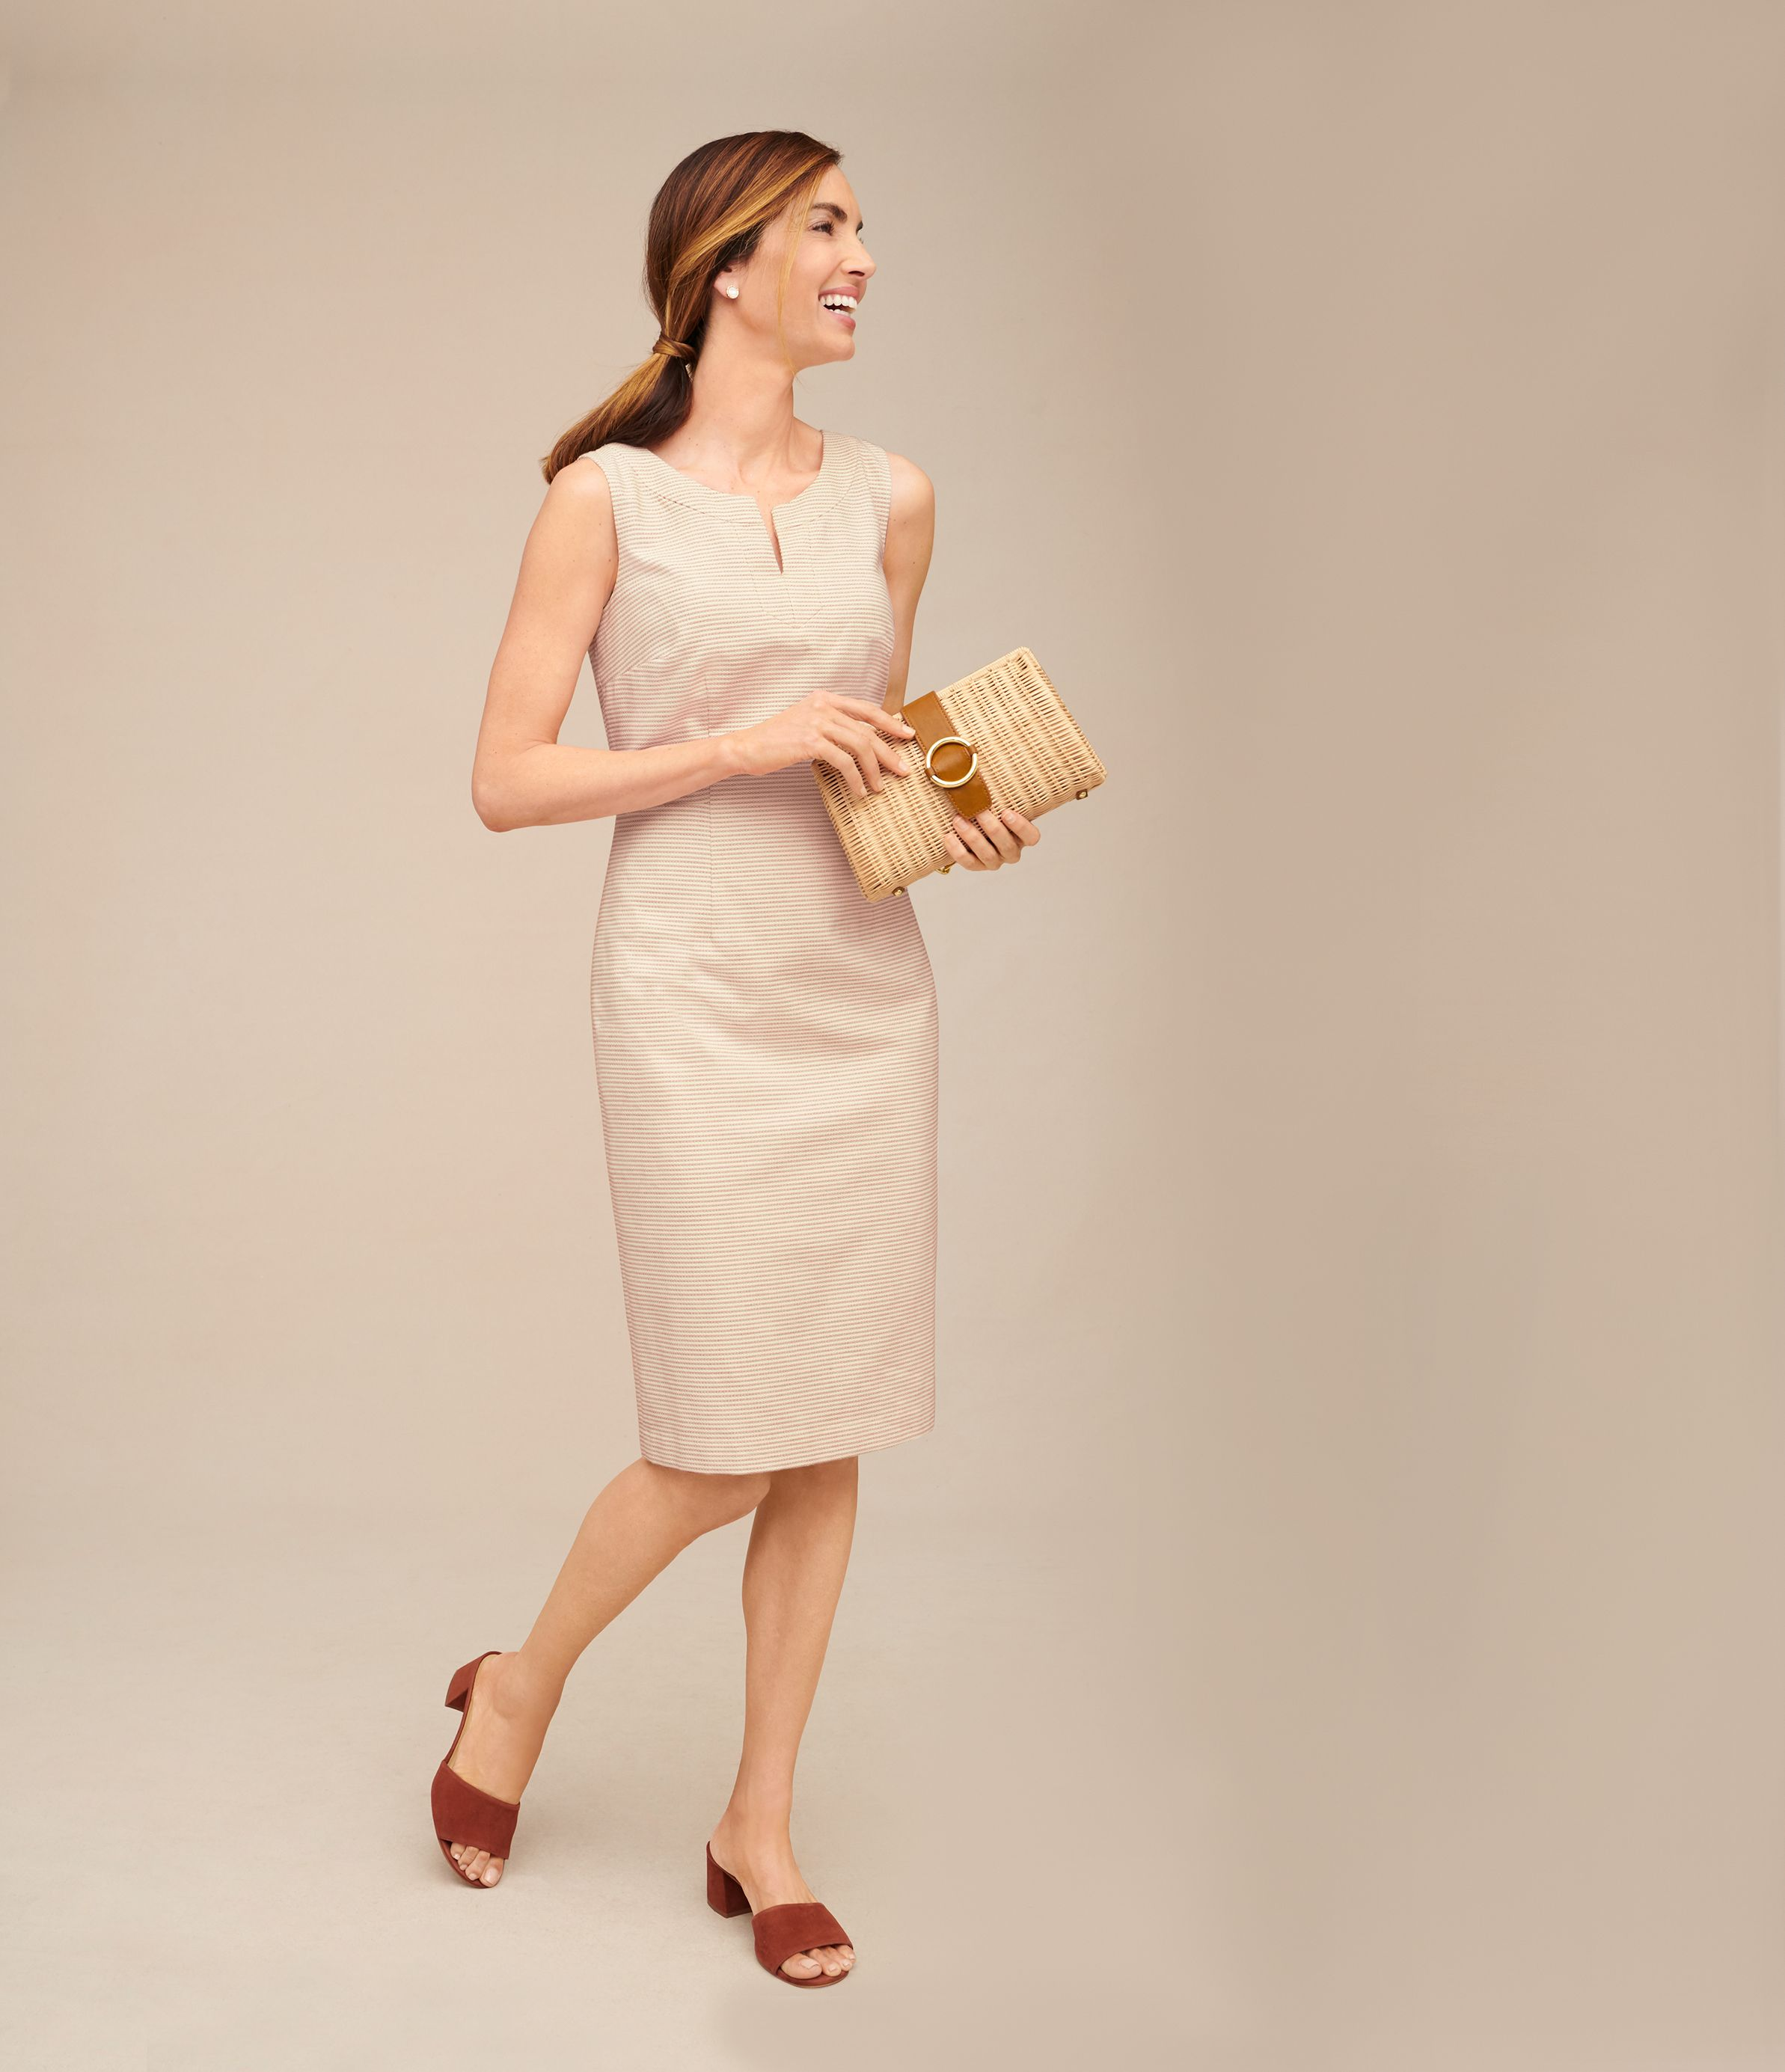 Expertly Tailored For A Fitting Fit Talbots Wear To Work Dresses Talbots Dress Sheath Dress [ 2770 x 2386 Pixel ]